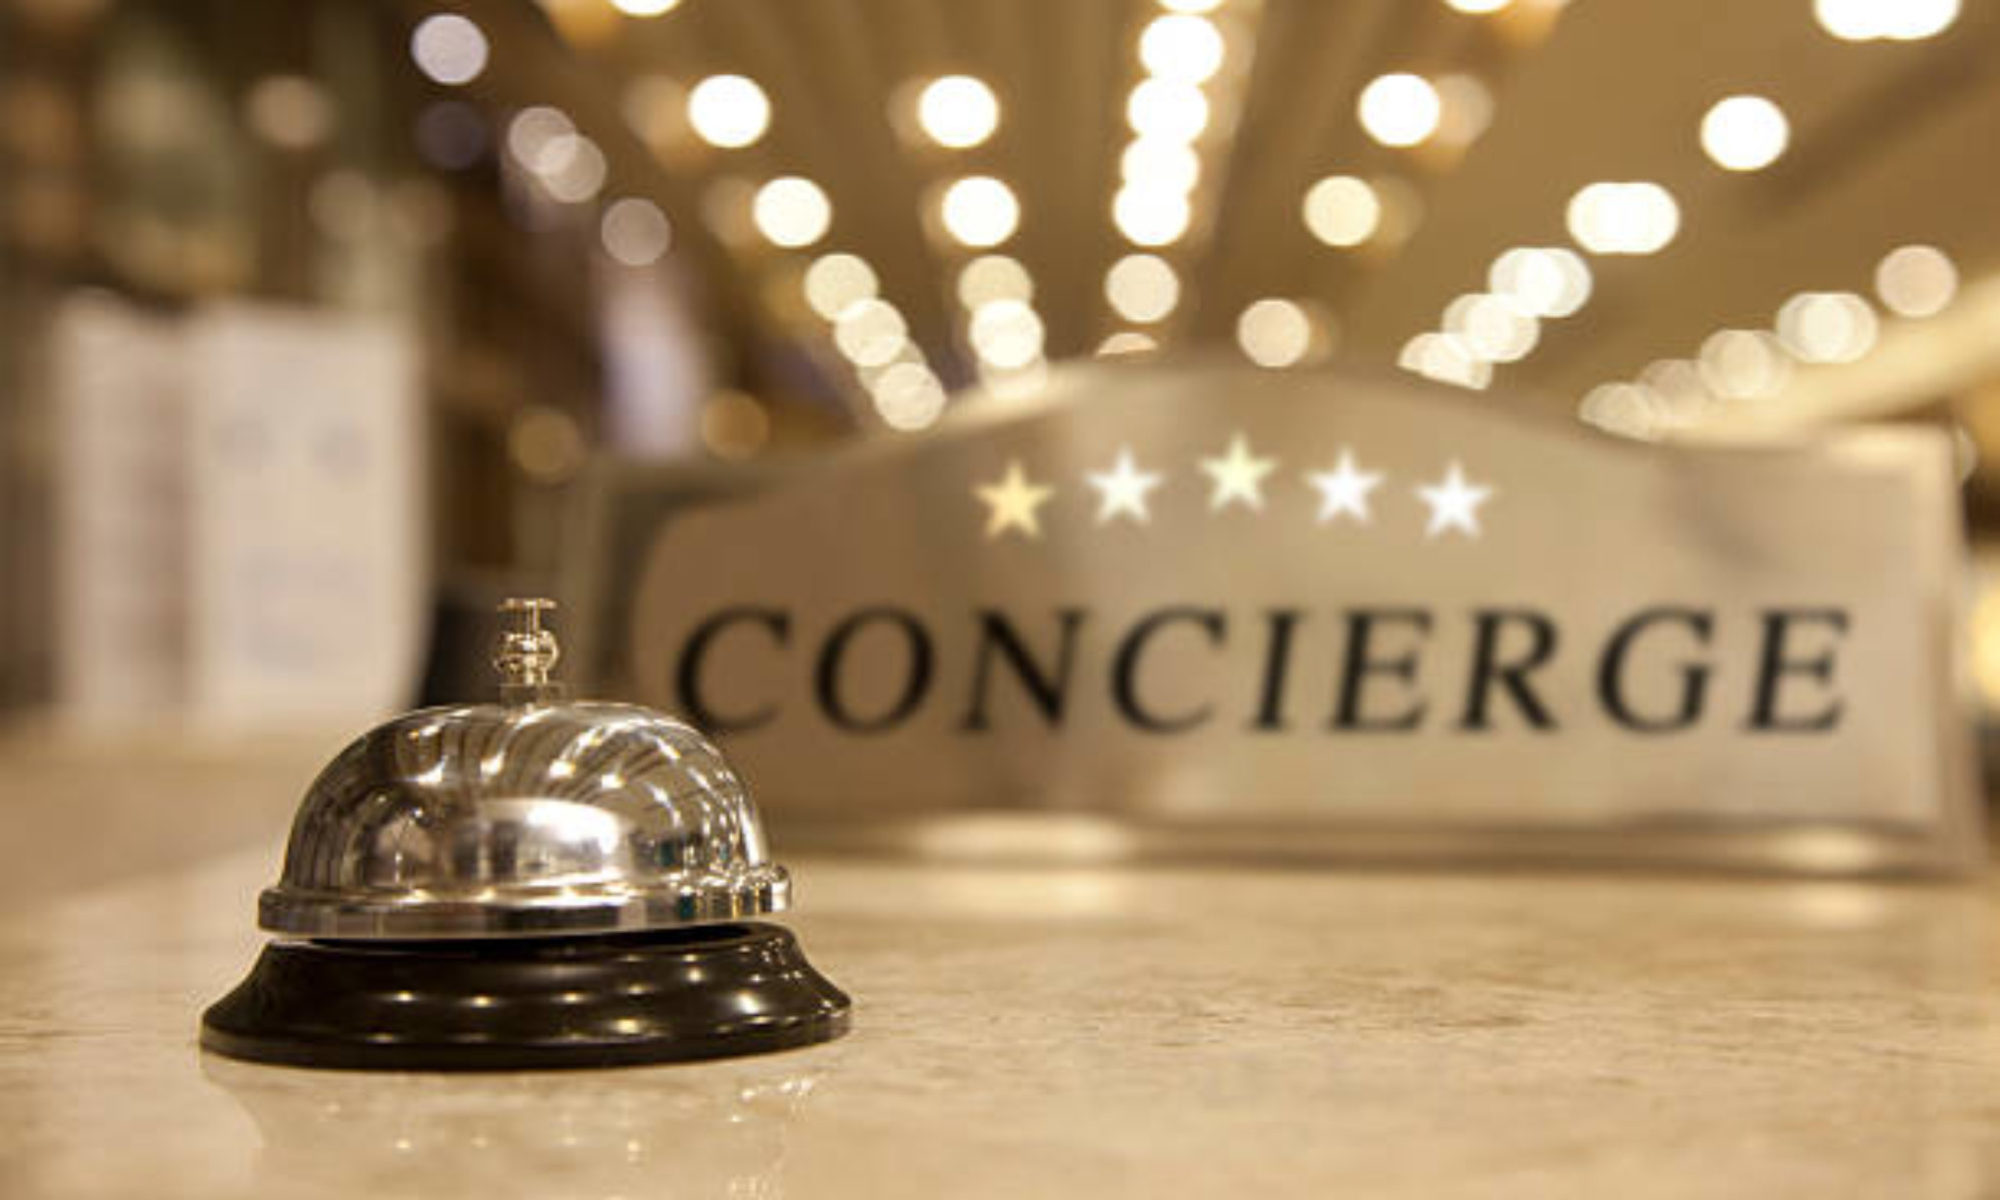 Keller Concierge